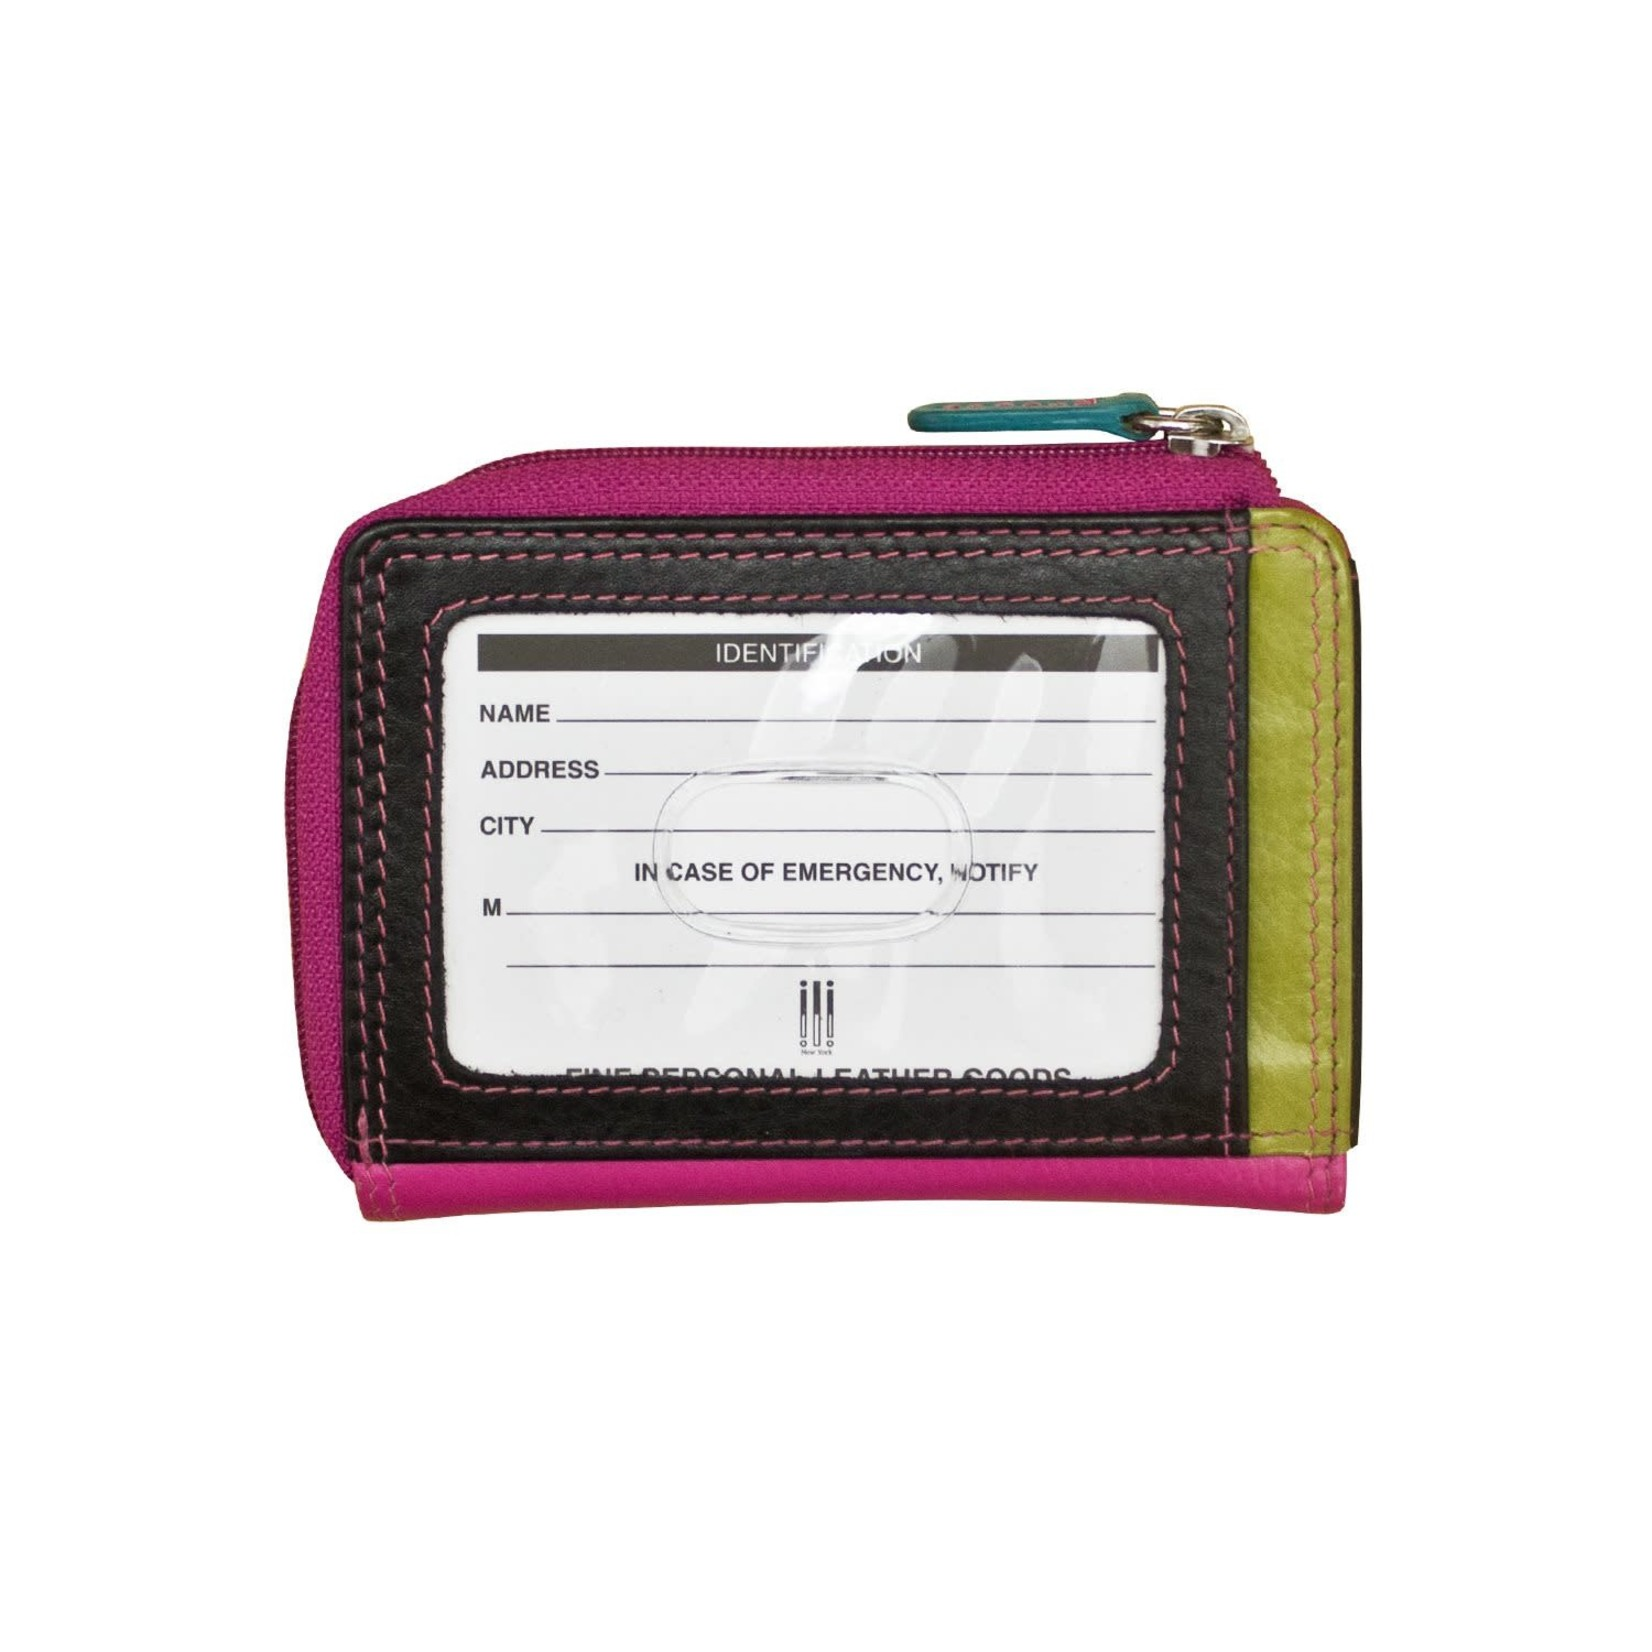 Leather Handbags and Accessories 7411 Black Brights - RFID CC ID Holder